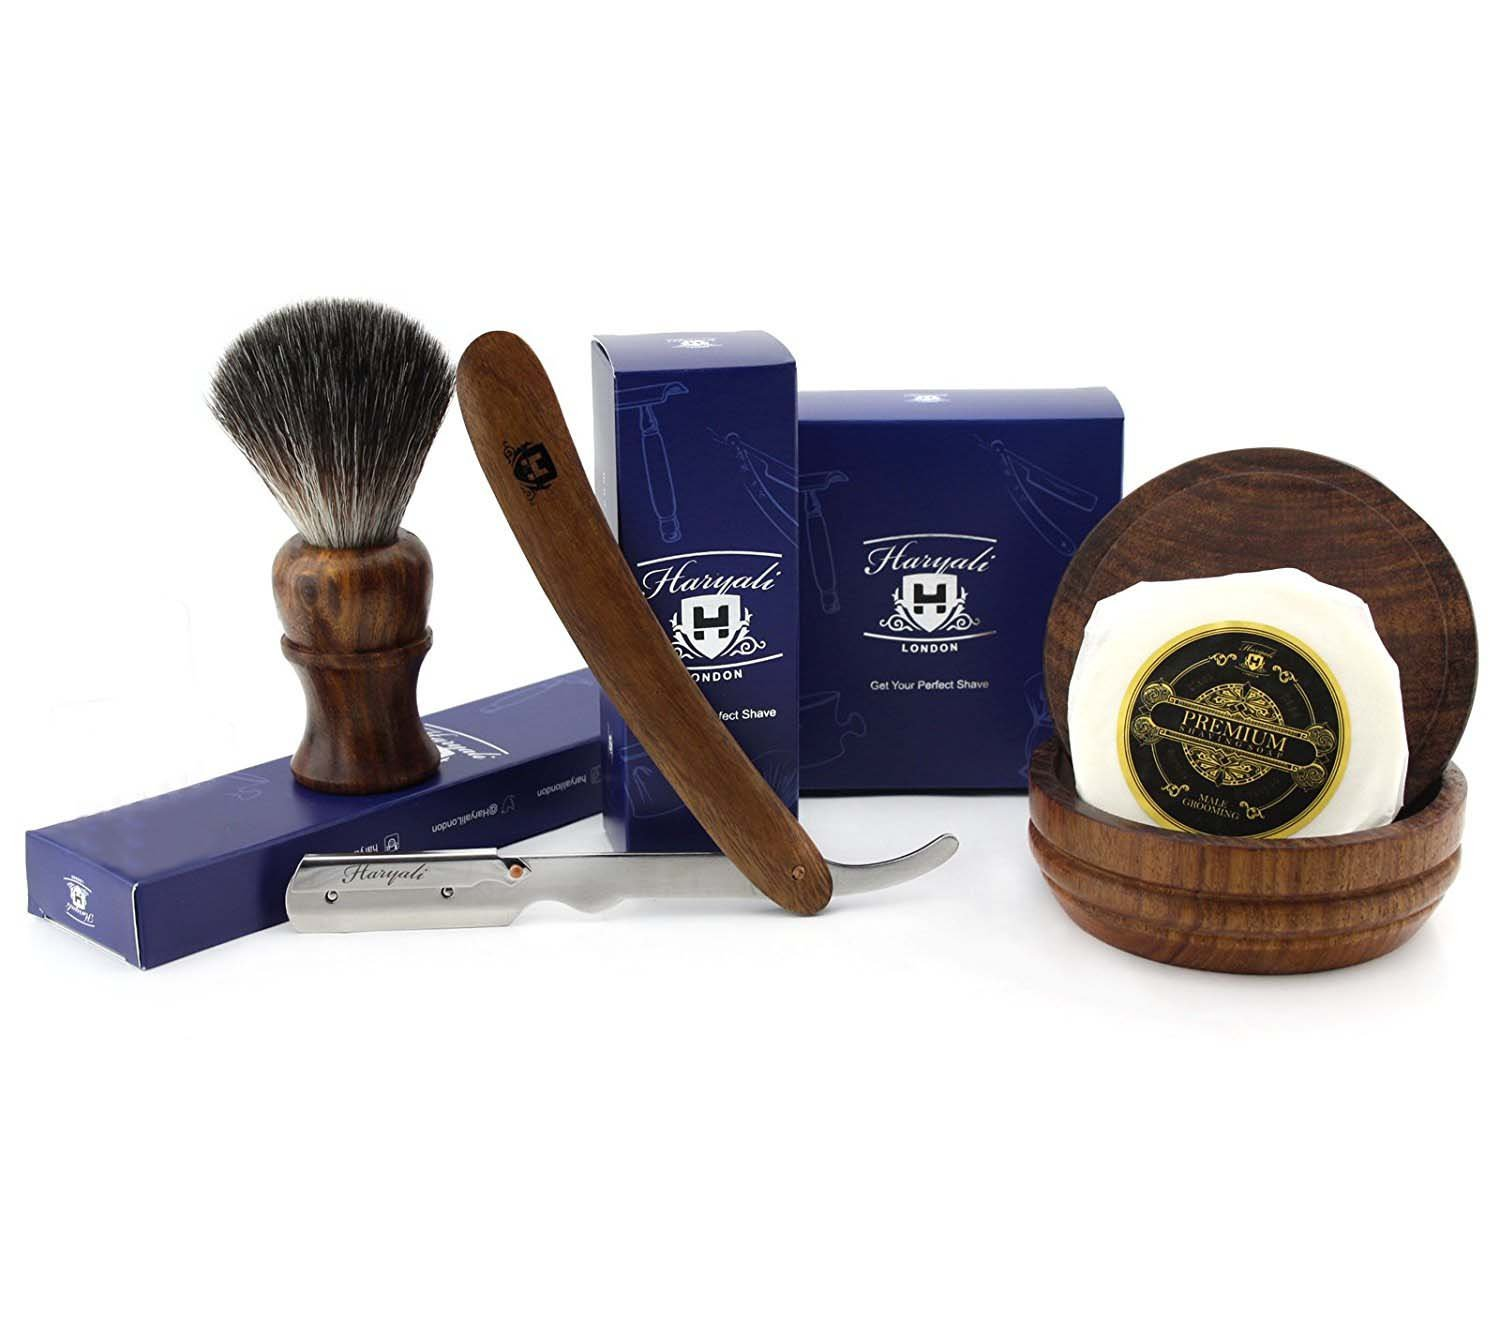 4 PCs Wooden Shaving Set with Straight Cut Throat/Shavete Razor,Black Badger Look Alike Synthetic Hair Brush with Soap & Bowl. Perfect Set in Rose Wood. Haryali London